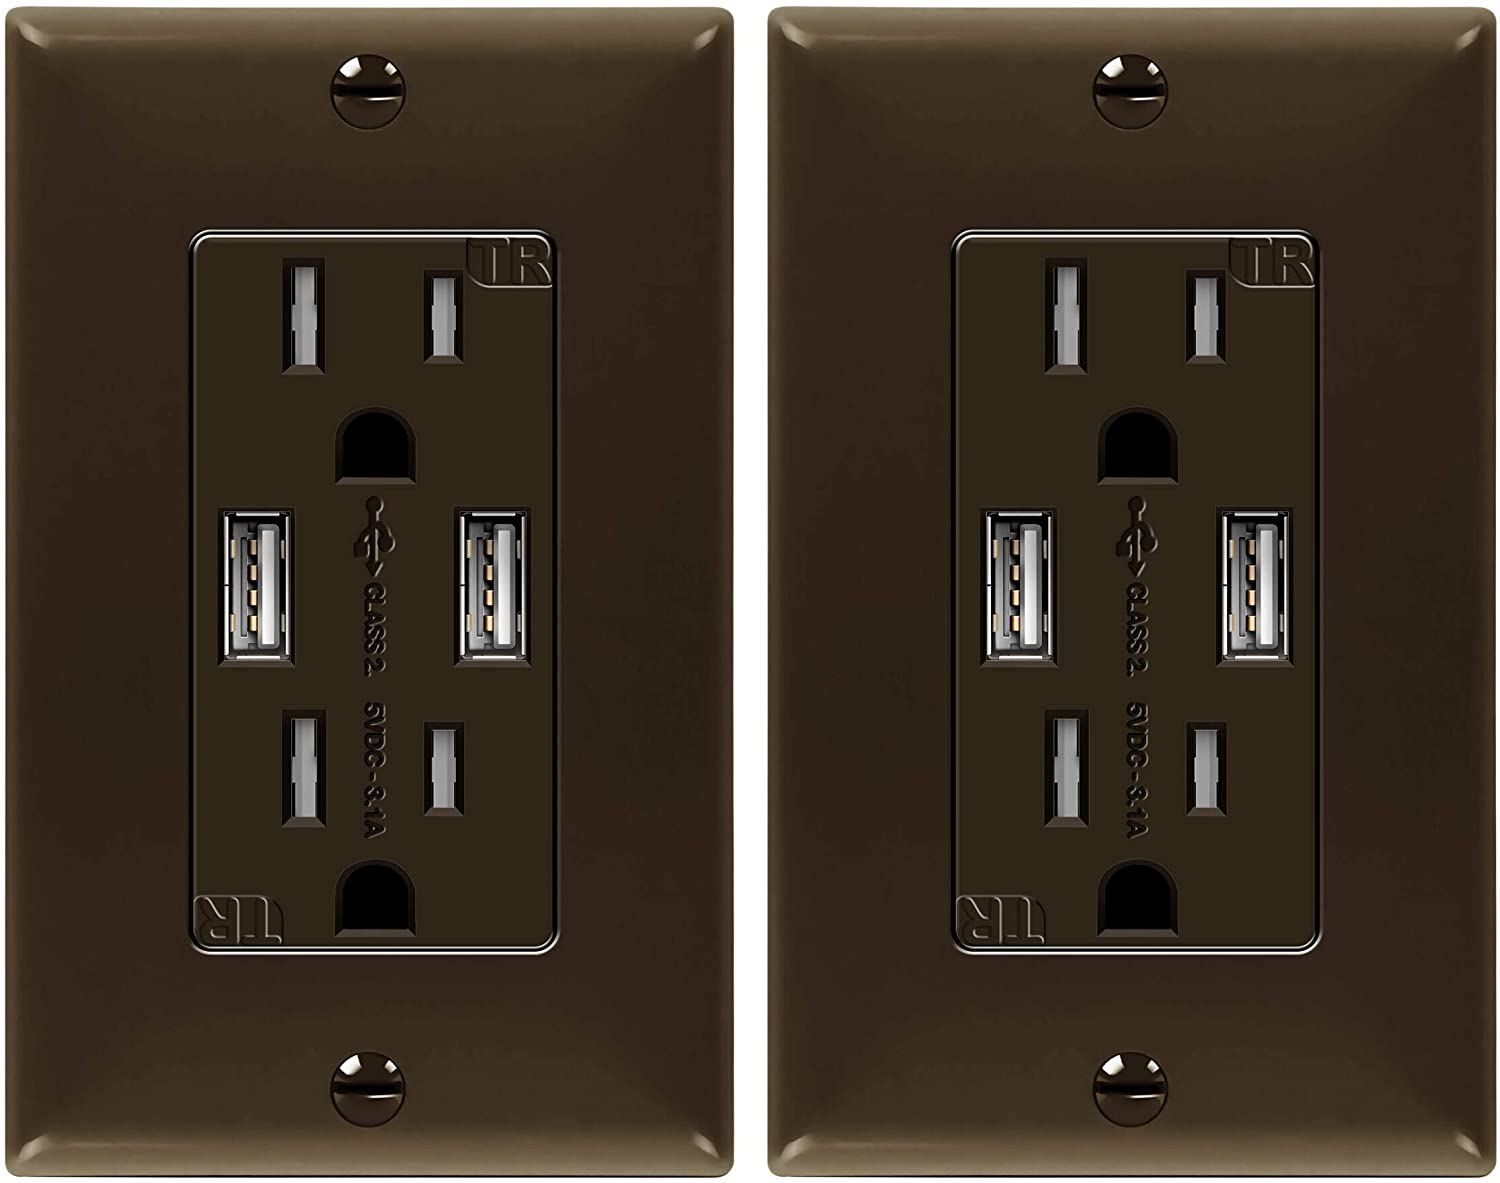 TOPGREENER 3.1A USB Wall Outlet Charger, 15A Tamper-Resistant Receptacles, Compatible with iPhone SE/11/XS/XR/X/8, Samsung Galaxy S20/S10/S9/Note, LG, HTC & More, TU2153A-BR-2PCS, Brown, 2 Pack